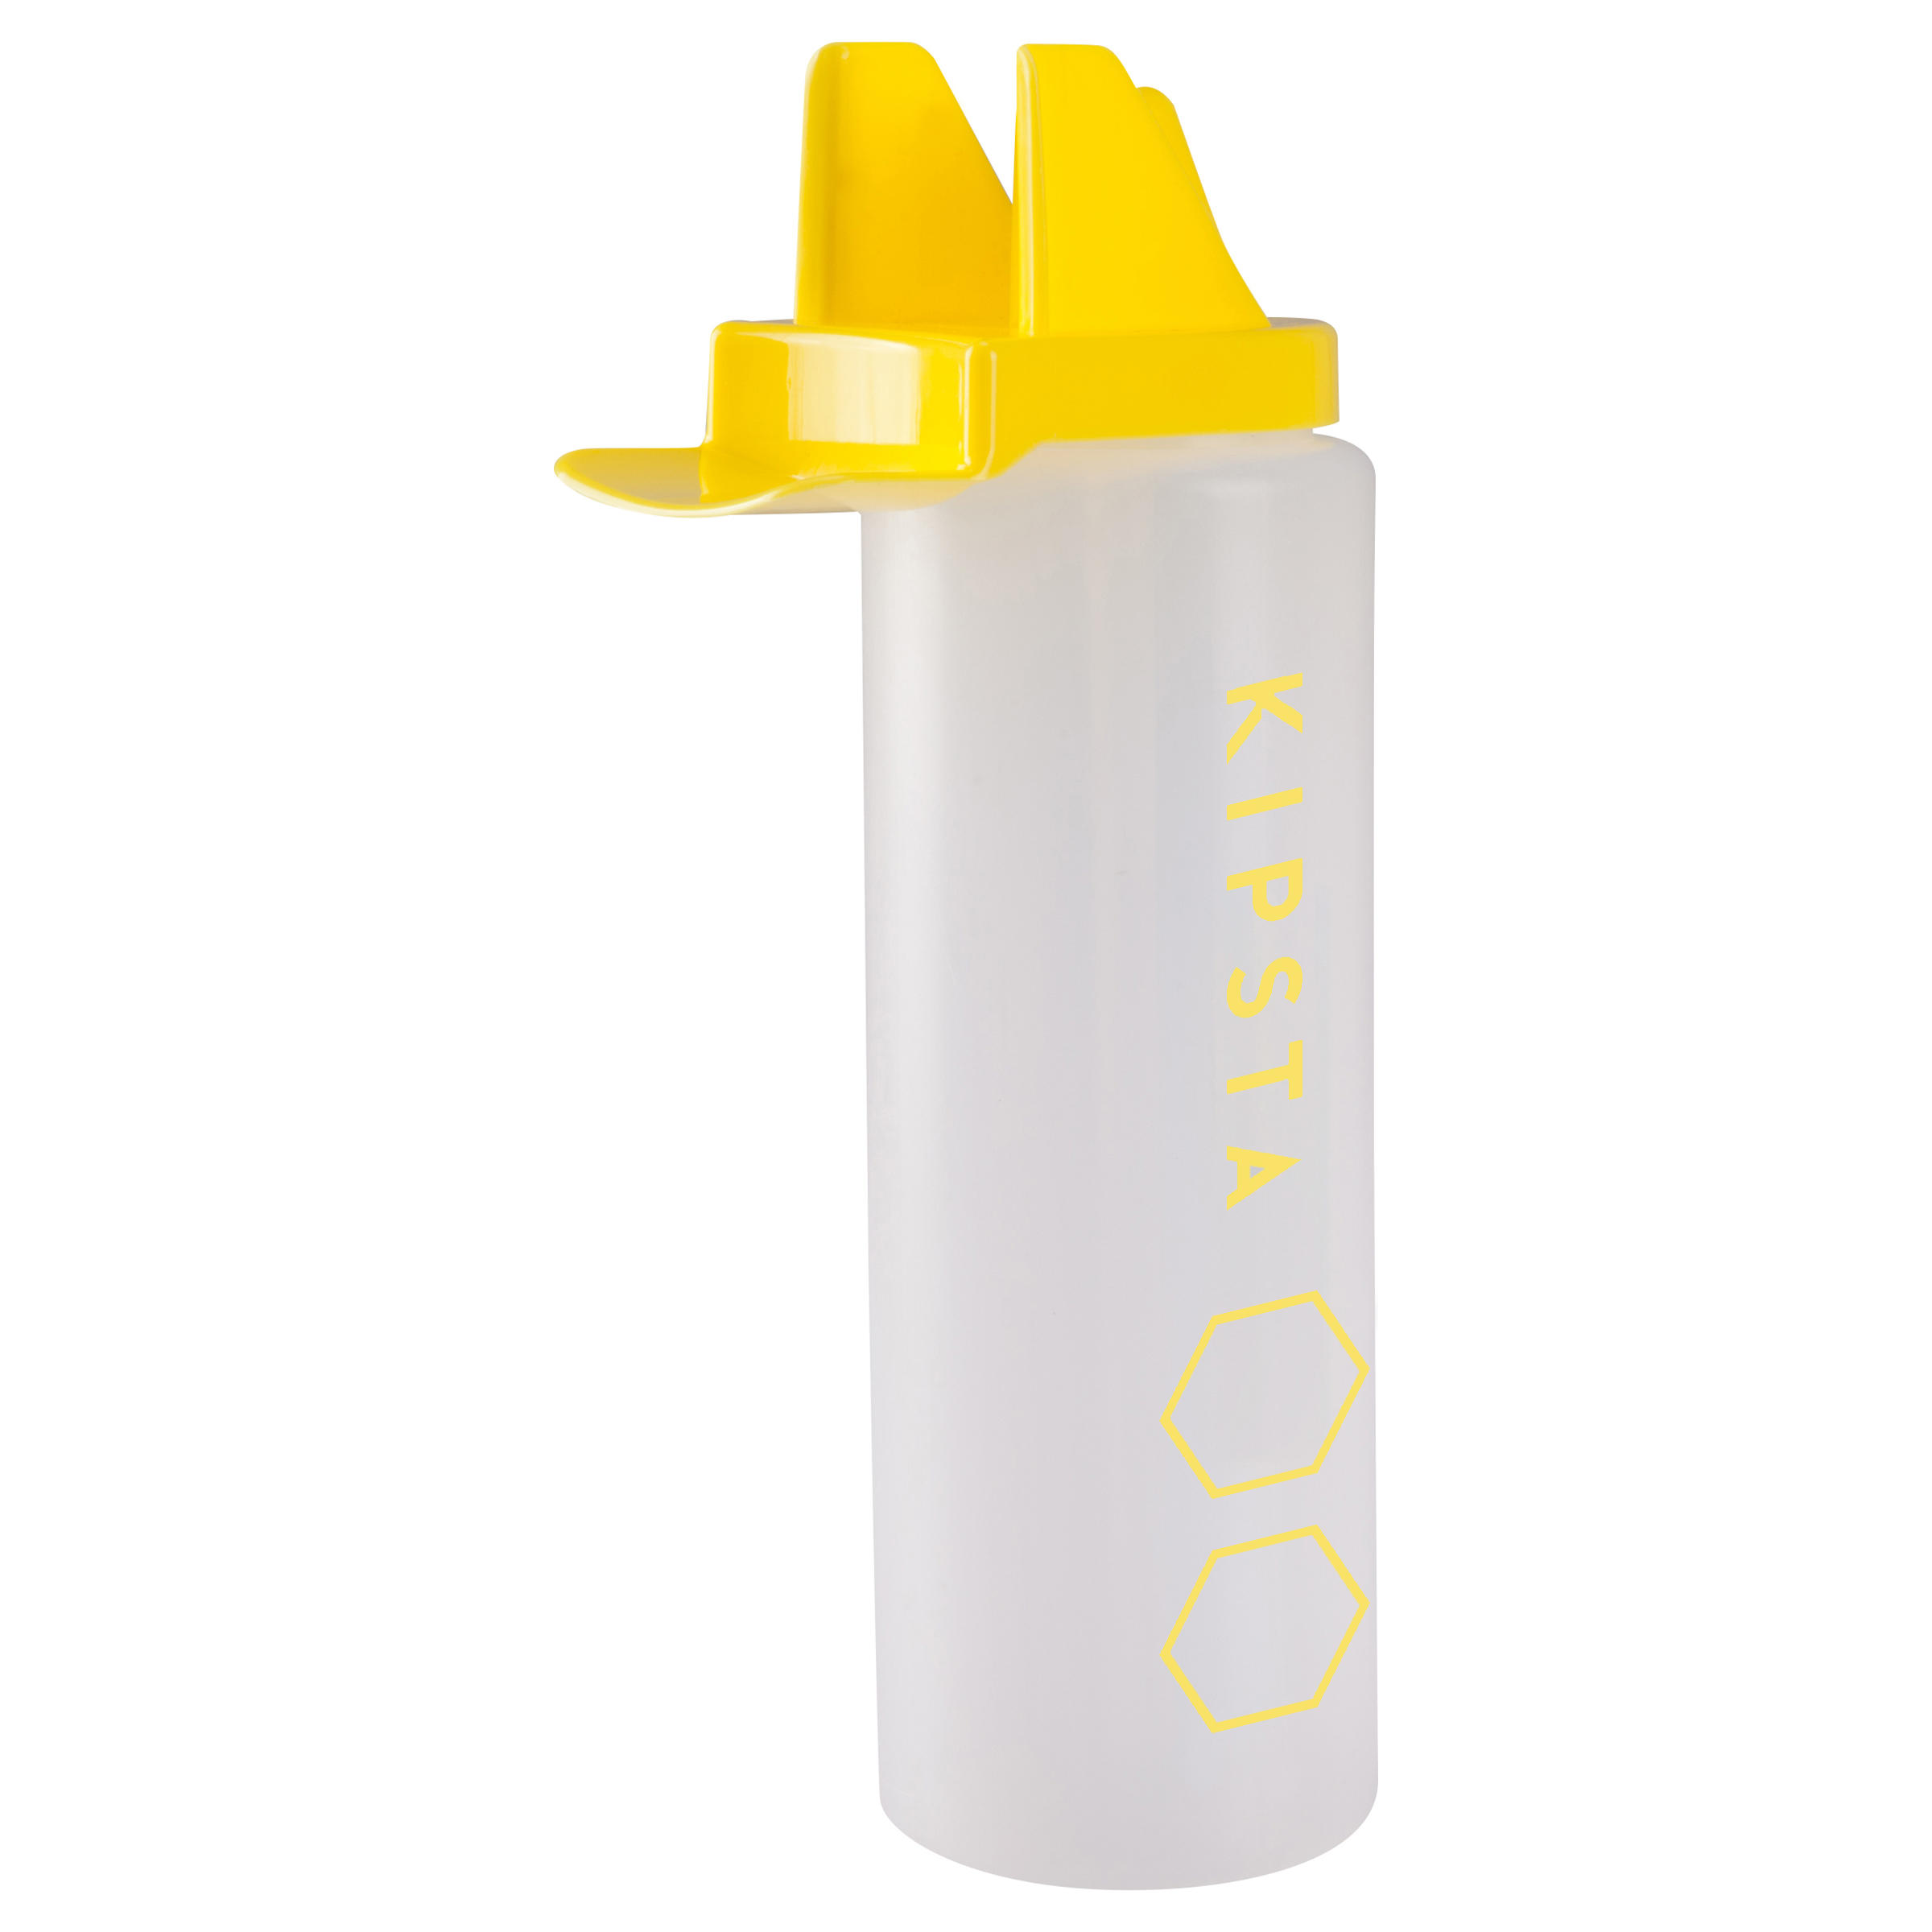 Hygienic 1 Litre Plastic Water Bottle - White Yellow